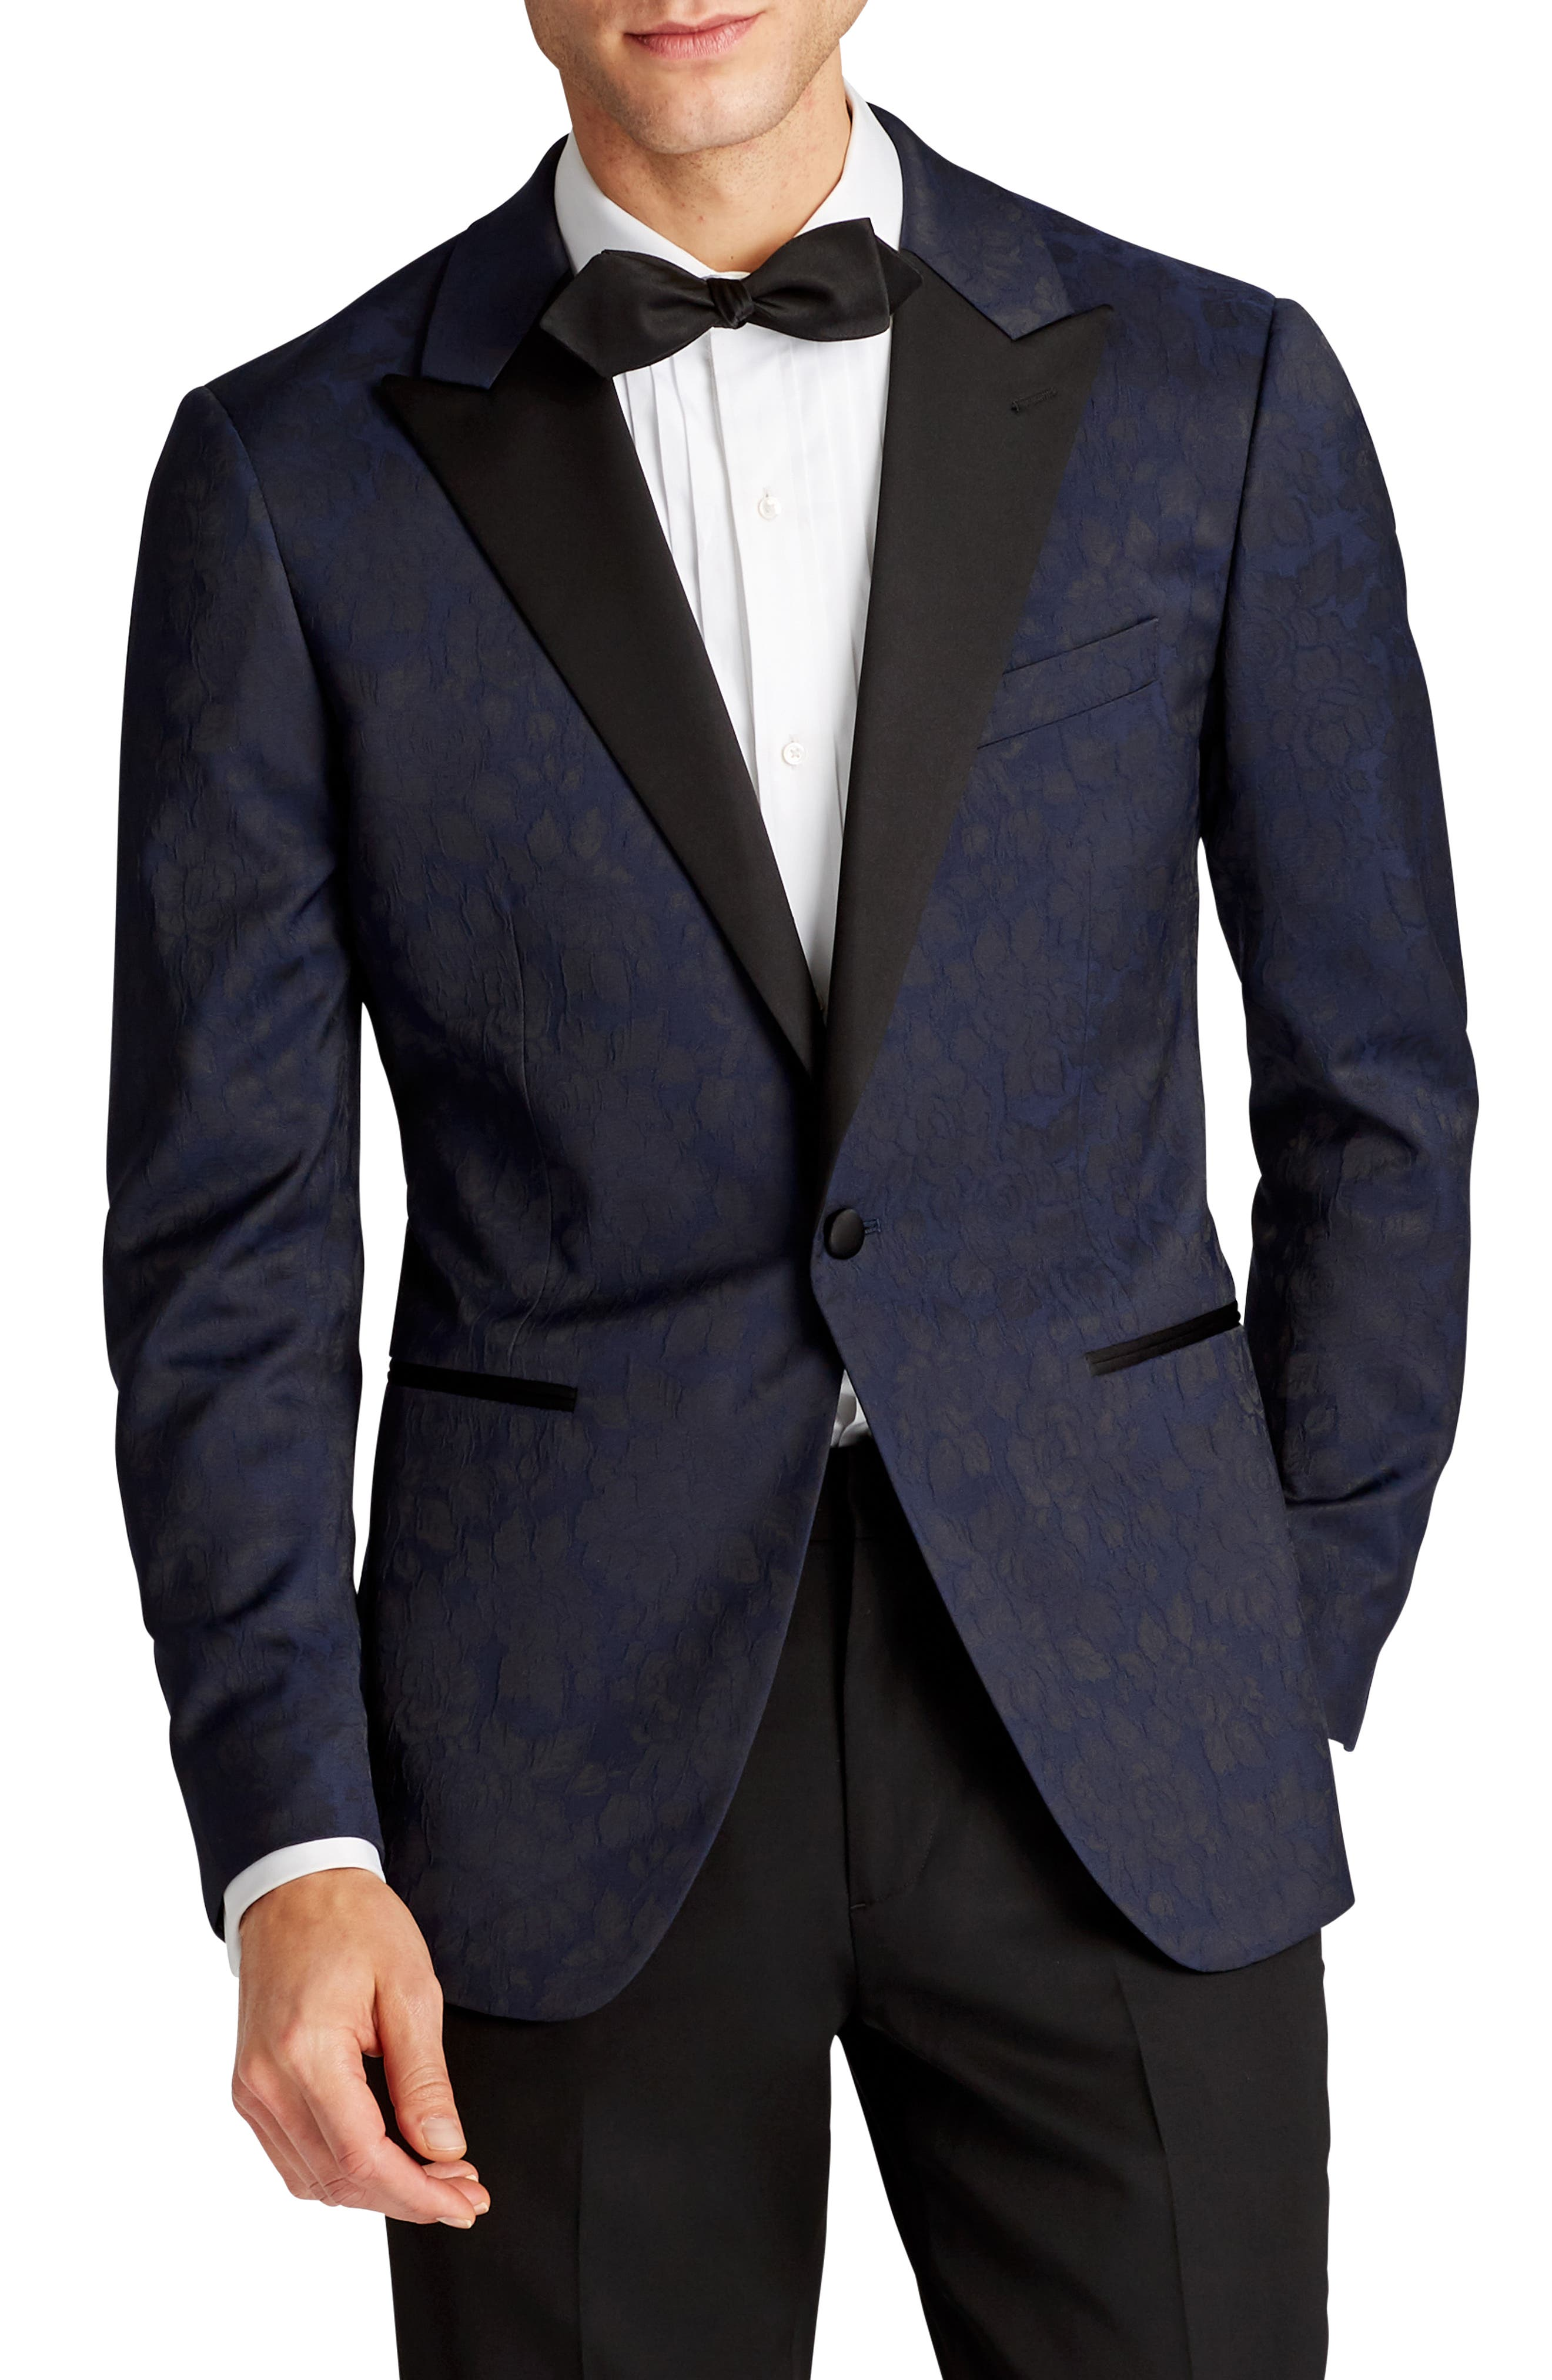 Capstone Slim Fit Stretch Dinner Jacket,                         Main,                         color, Floral Jacquard